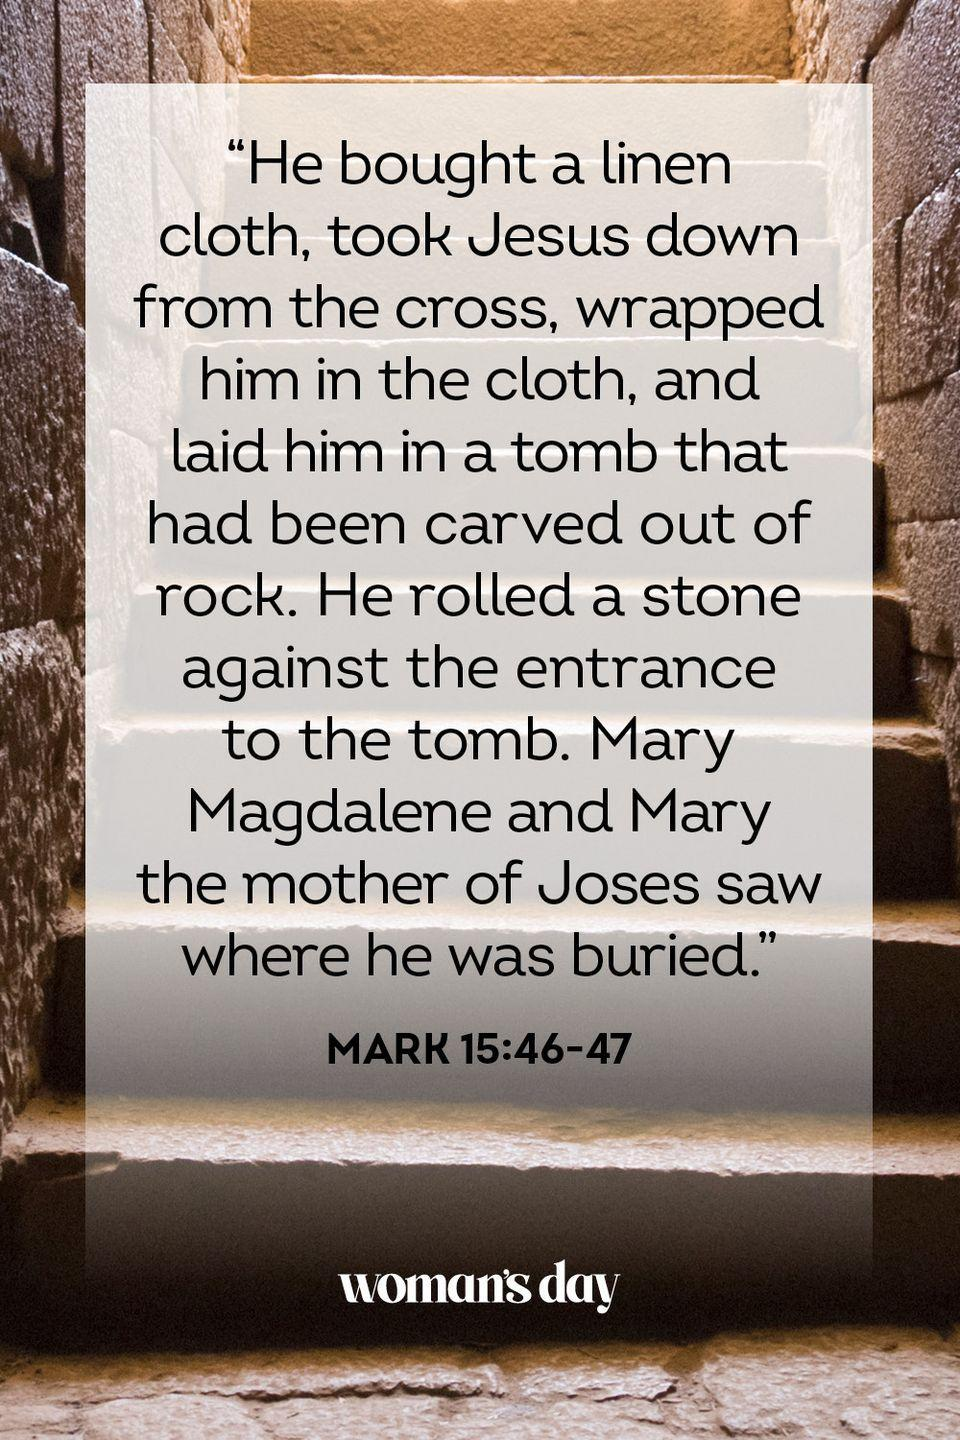 "<p>""He bought a linen cloth, took Jesus down from the cross, wrapped him in the cloth, and laid him in a tomb that had been carved out of rock. He rolled a stone against the entrance to the tomb. Mary Magdalene and Mary the mother of Joses saw where he was buried."" — Mark 15:46-47</p>"